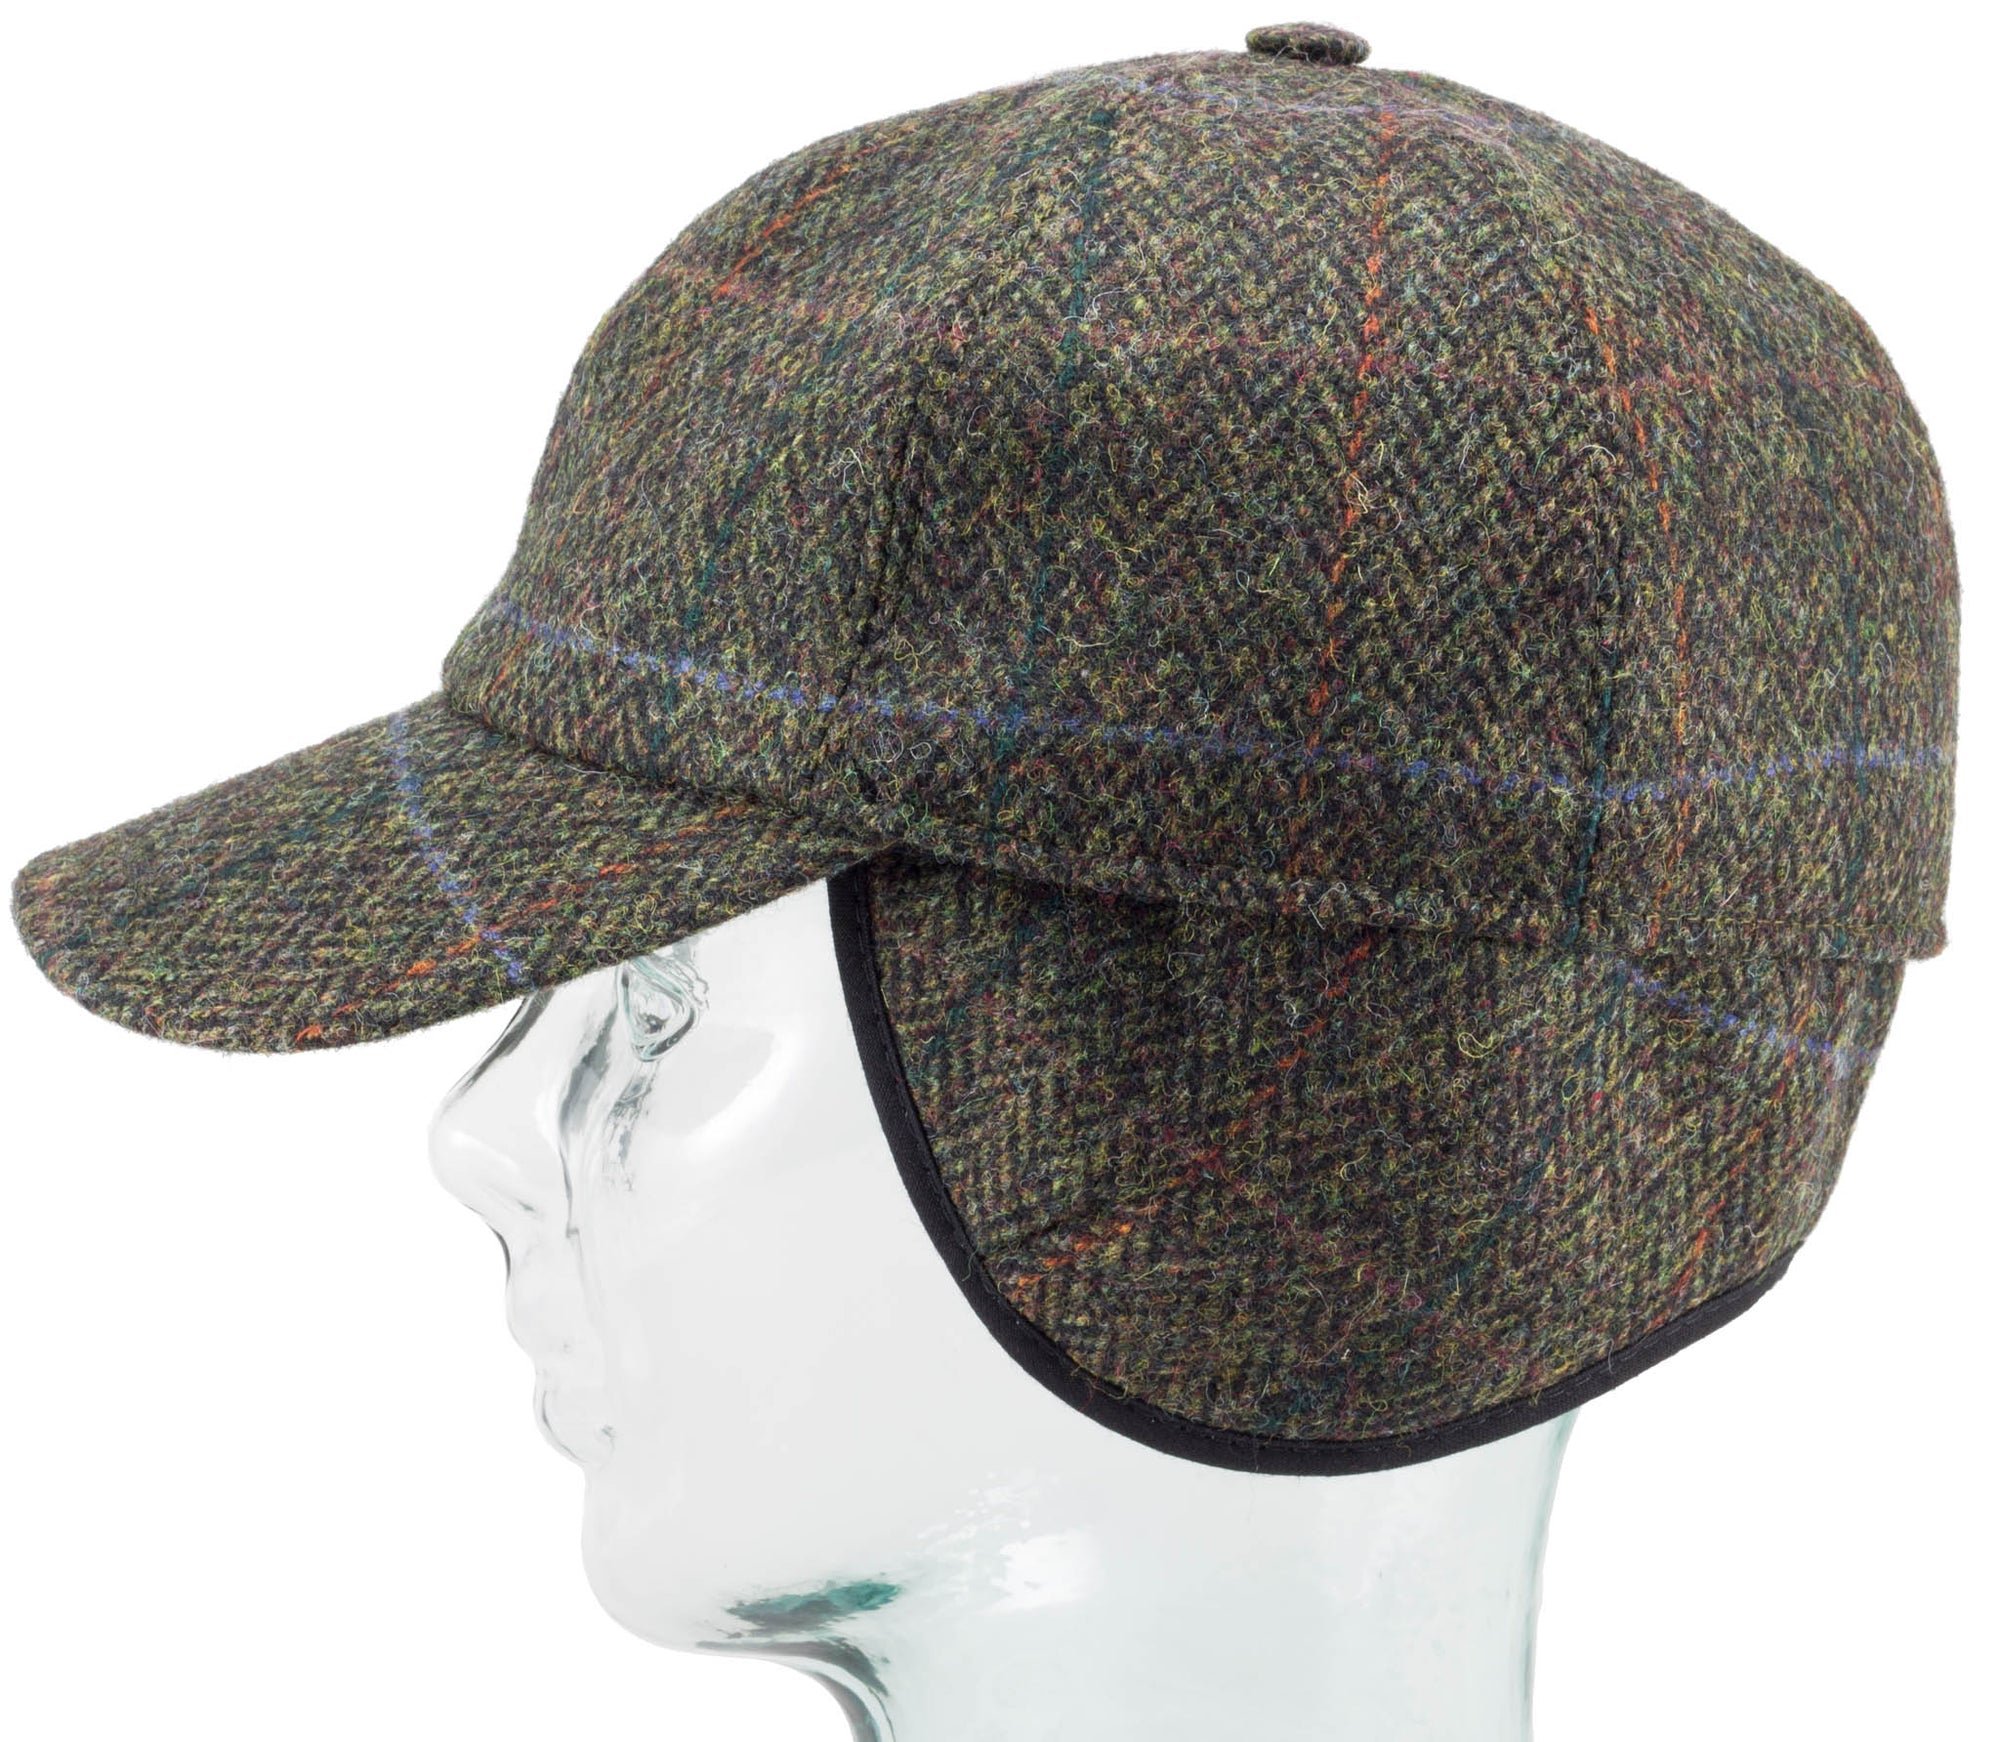 Tweed Baseball Style Cap with Earflaps - Dark Green Plaid